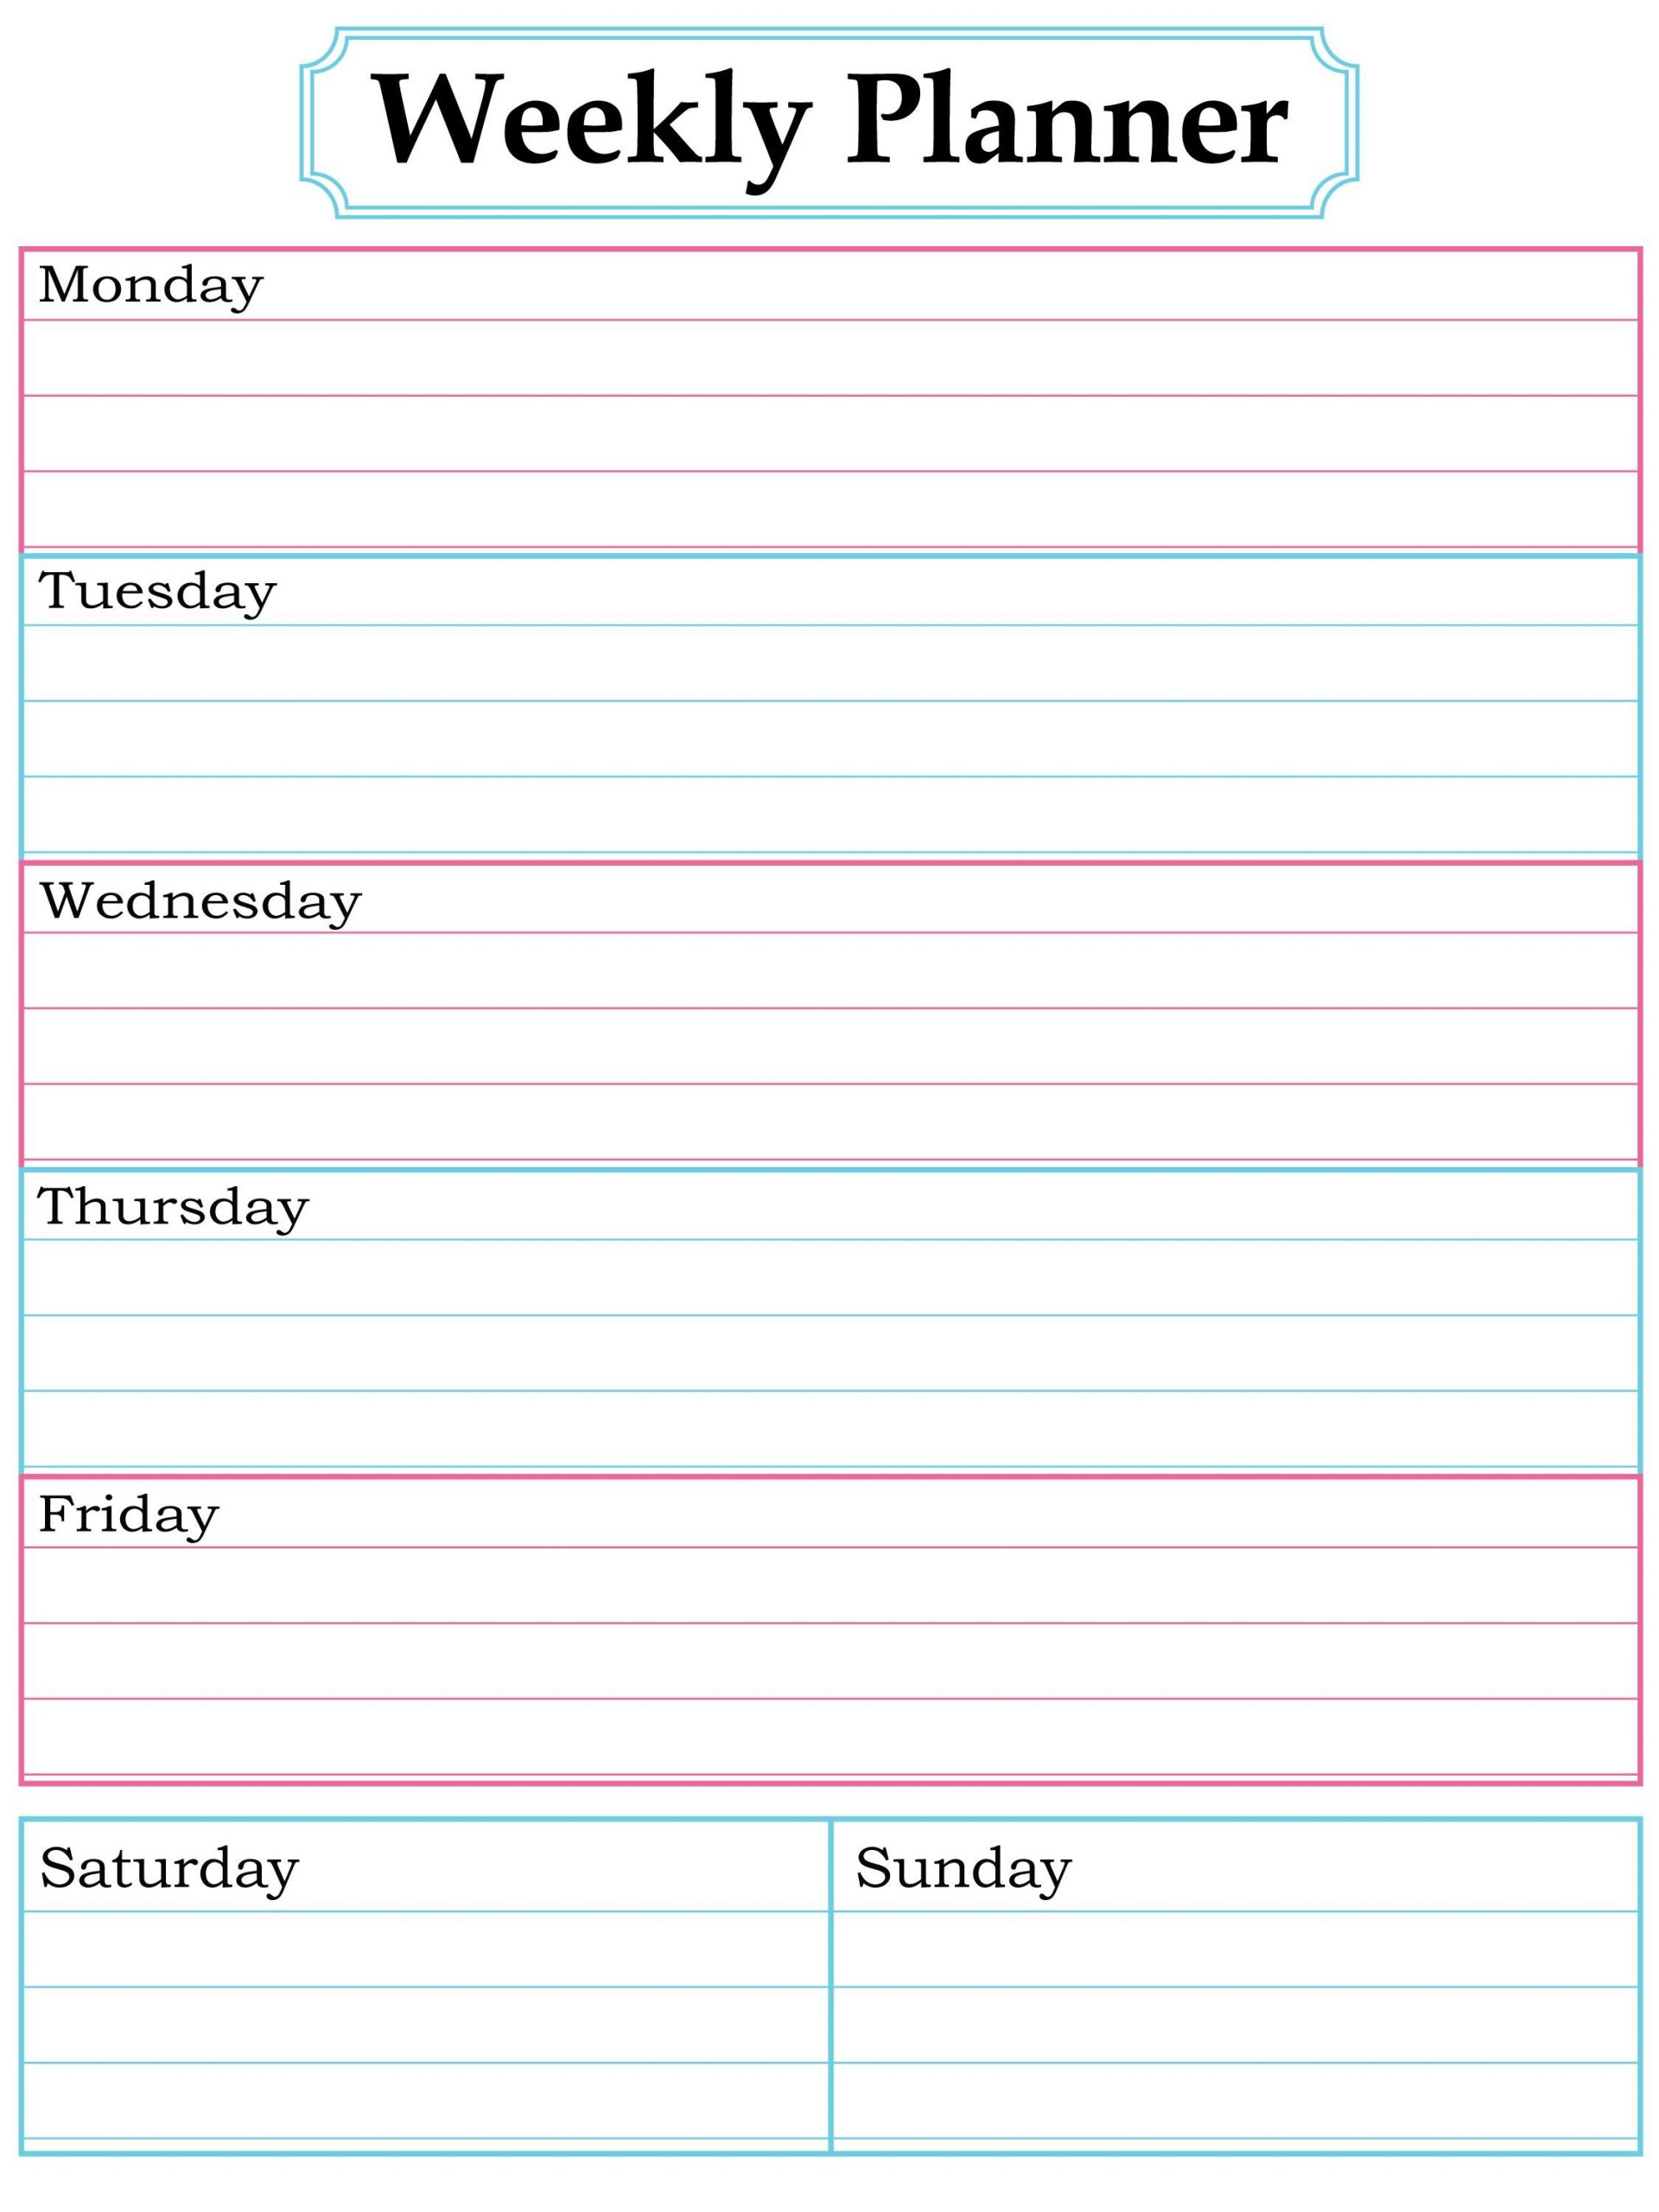 Blank Weekly Calendar To Fill In | Calendar Template Fill In School Schedule